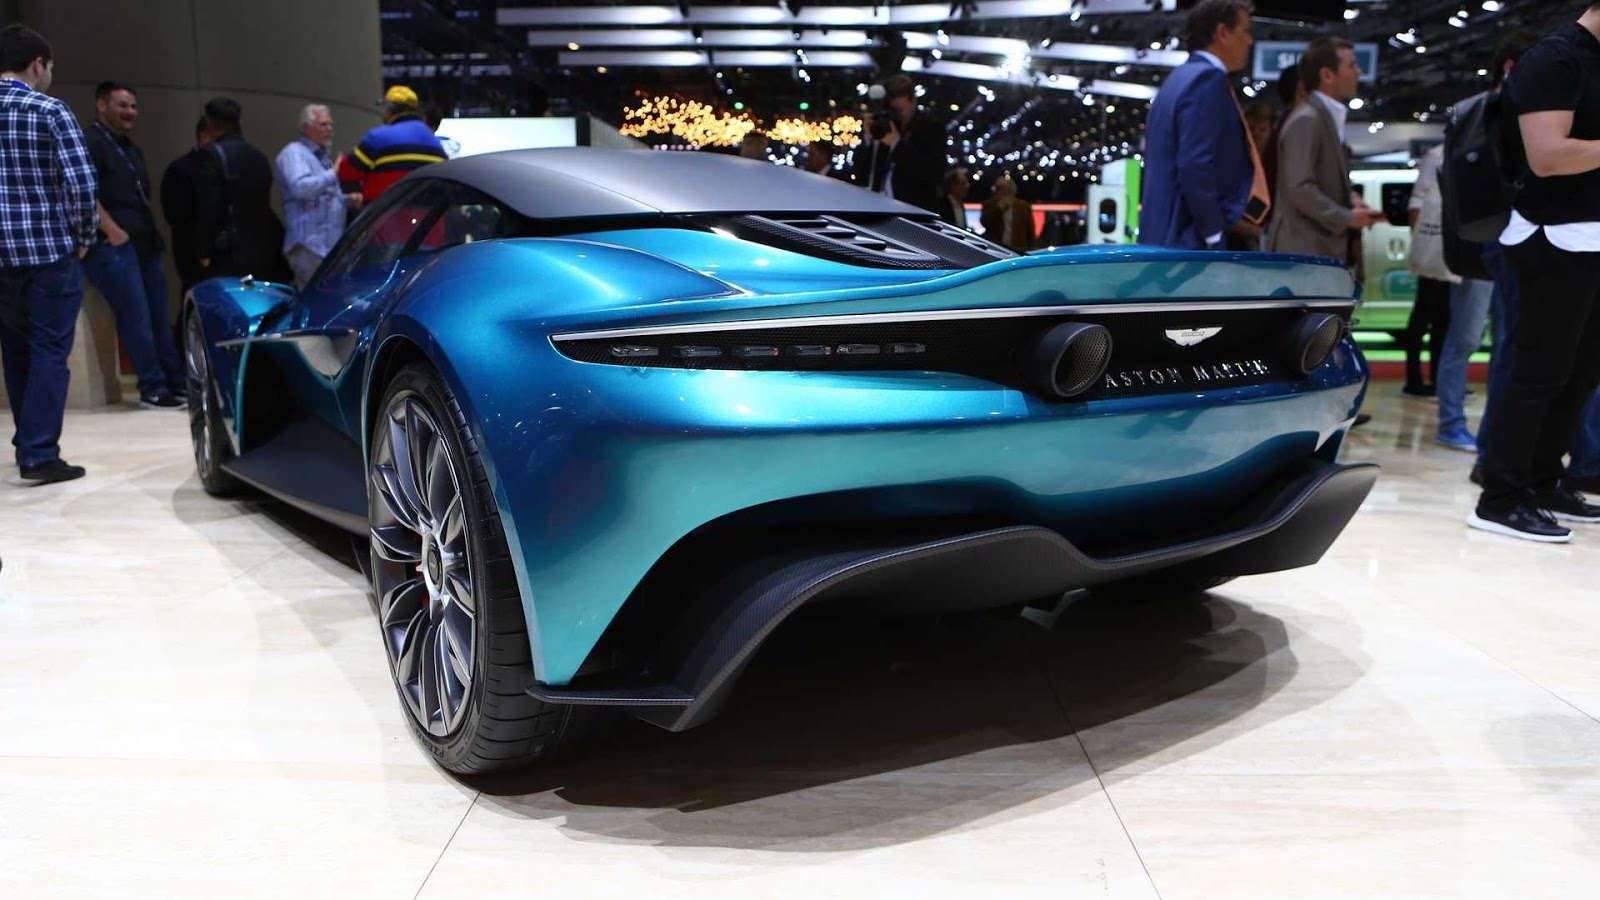 Trussty Jasmine Here S The First Aston Martin S Mid Engined Car Production Series Shown In Geneva